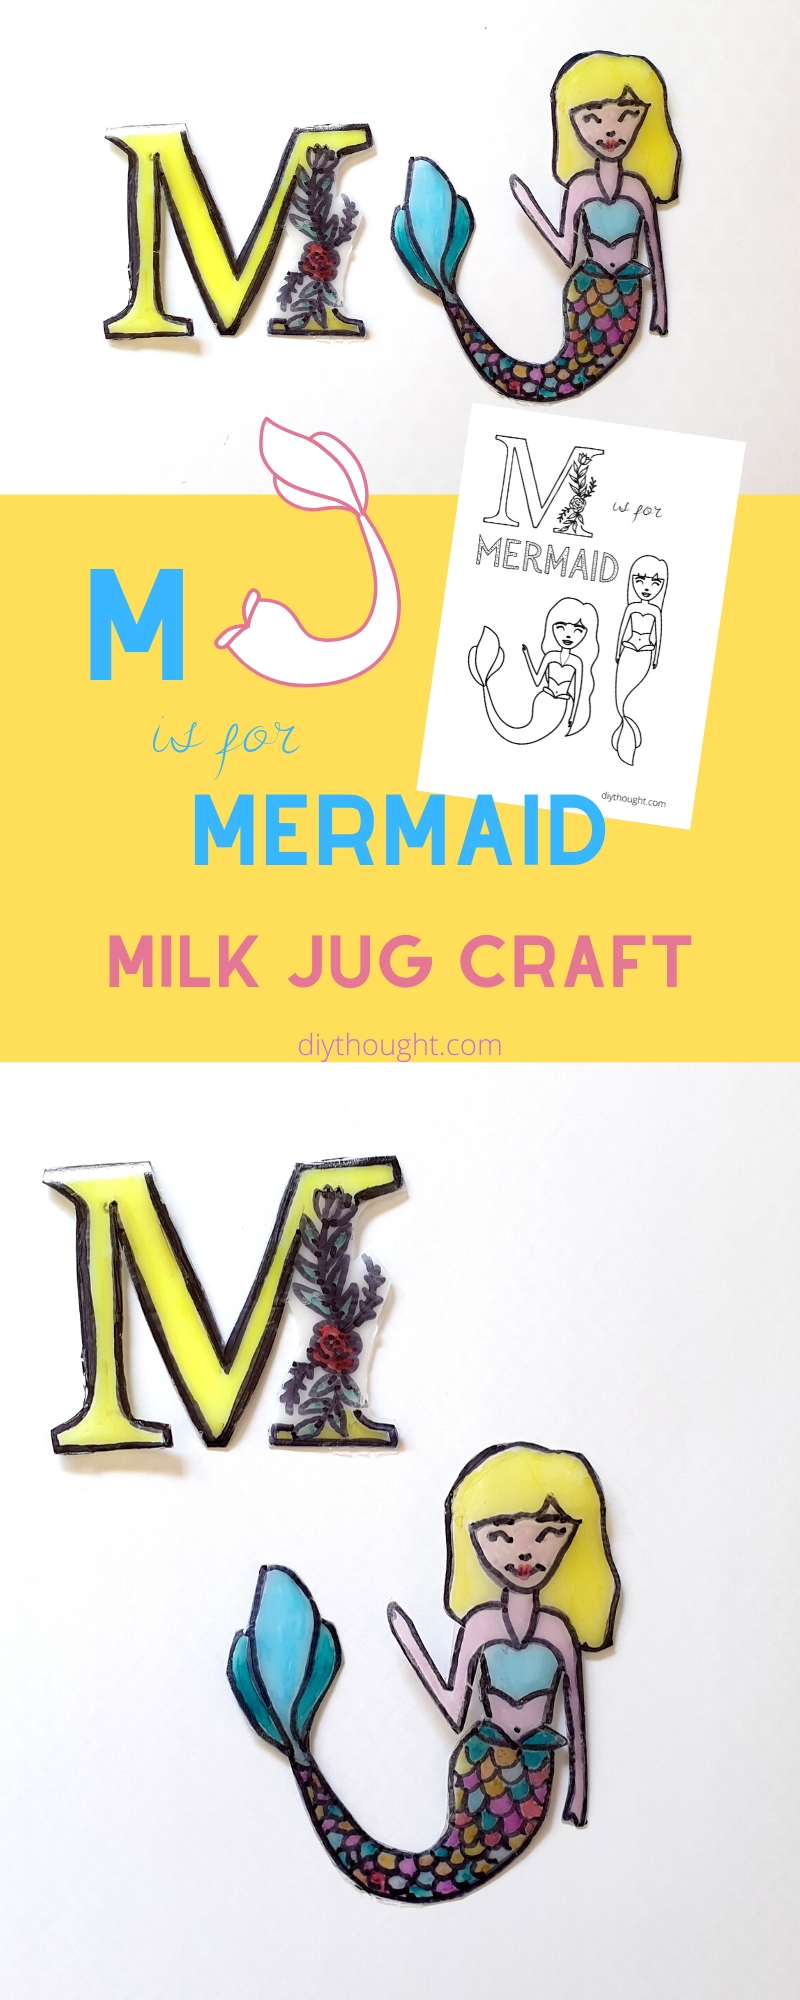 mermaid milk jug craft